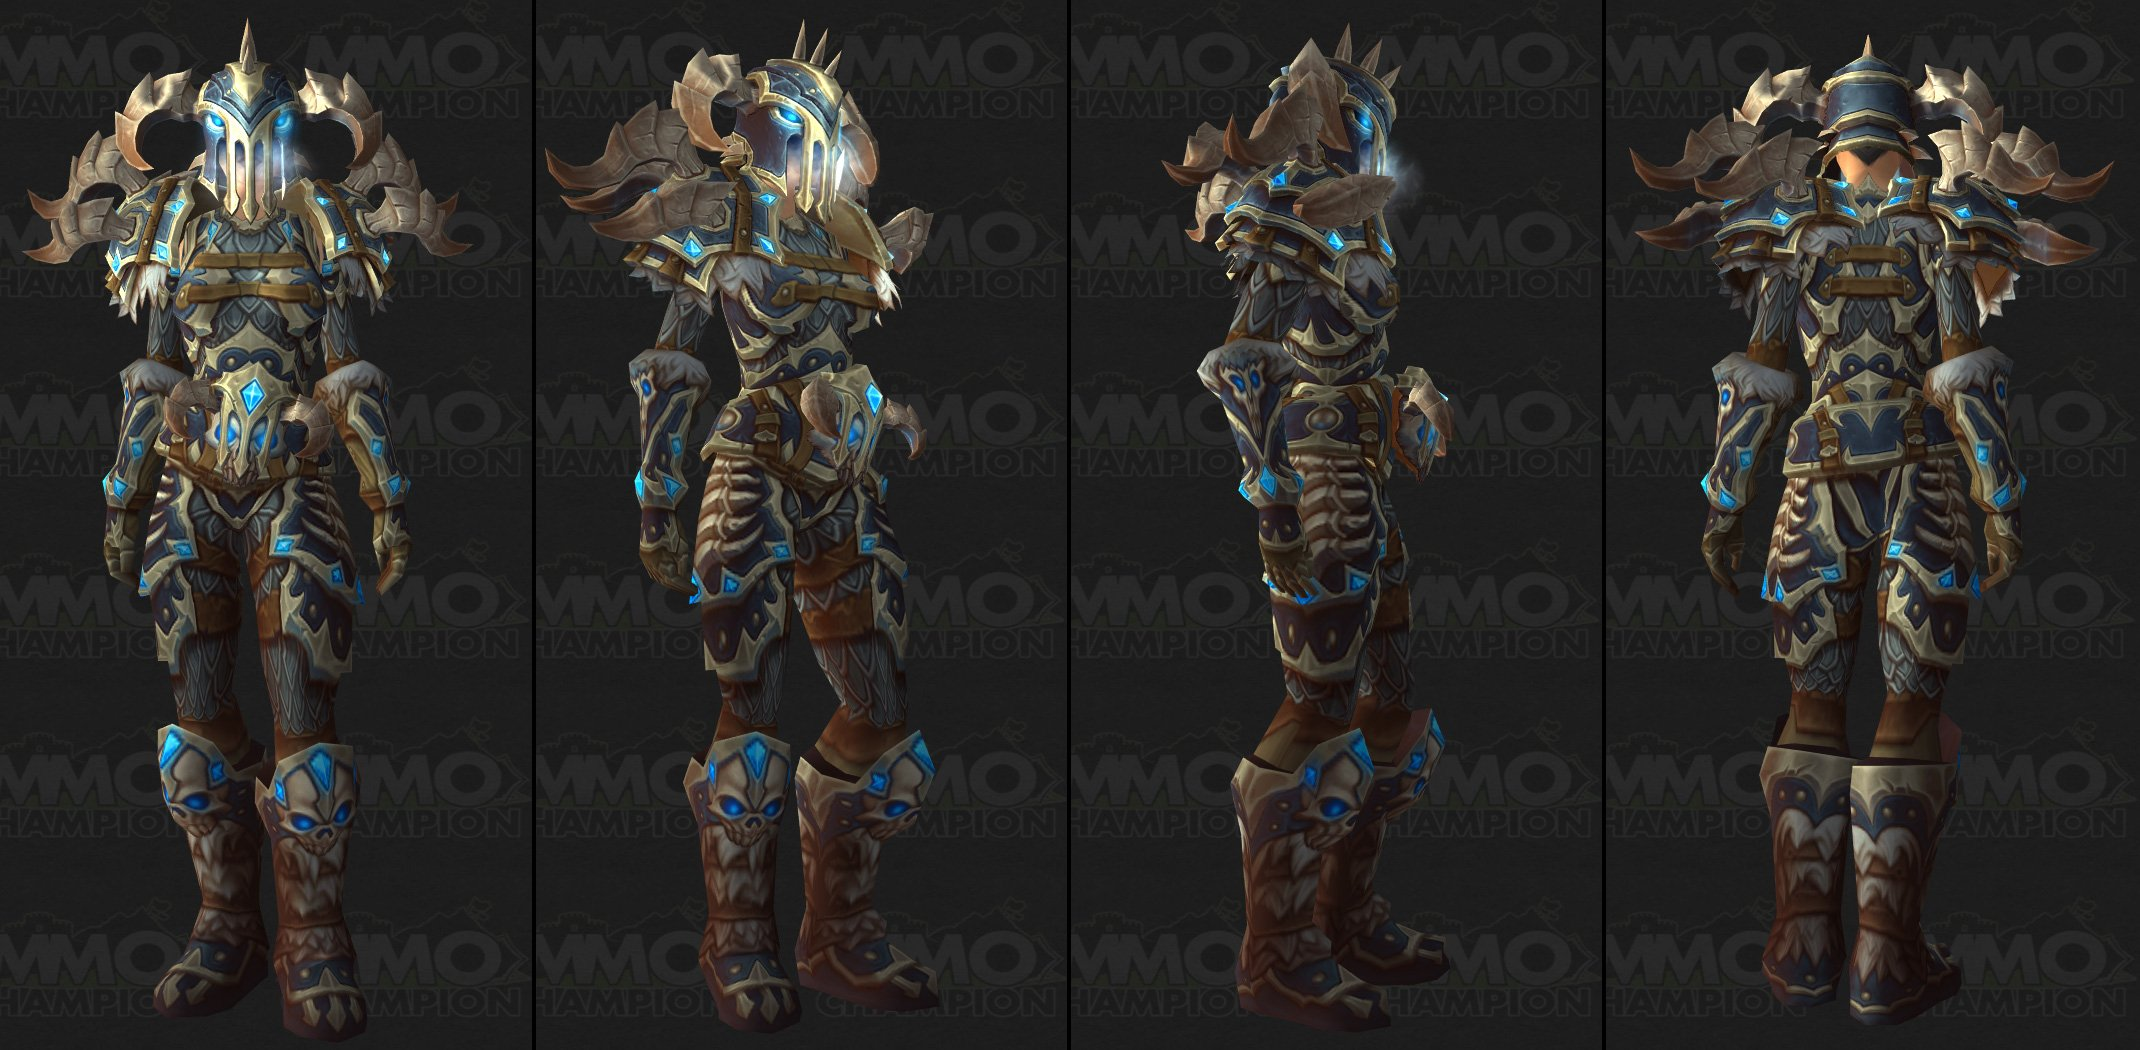 Challenge Mode Armor Sets. Death Knight & Challenge Mode Armor Sets - MMO-Champion